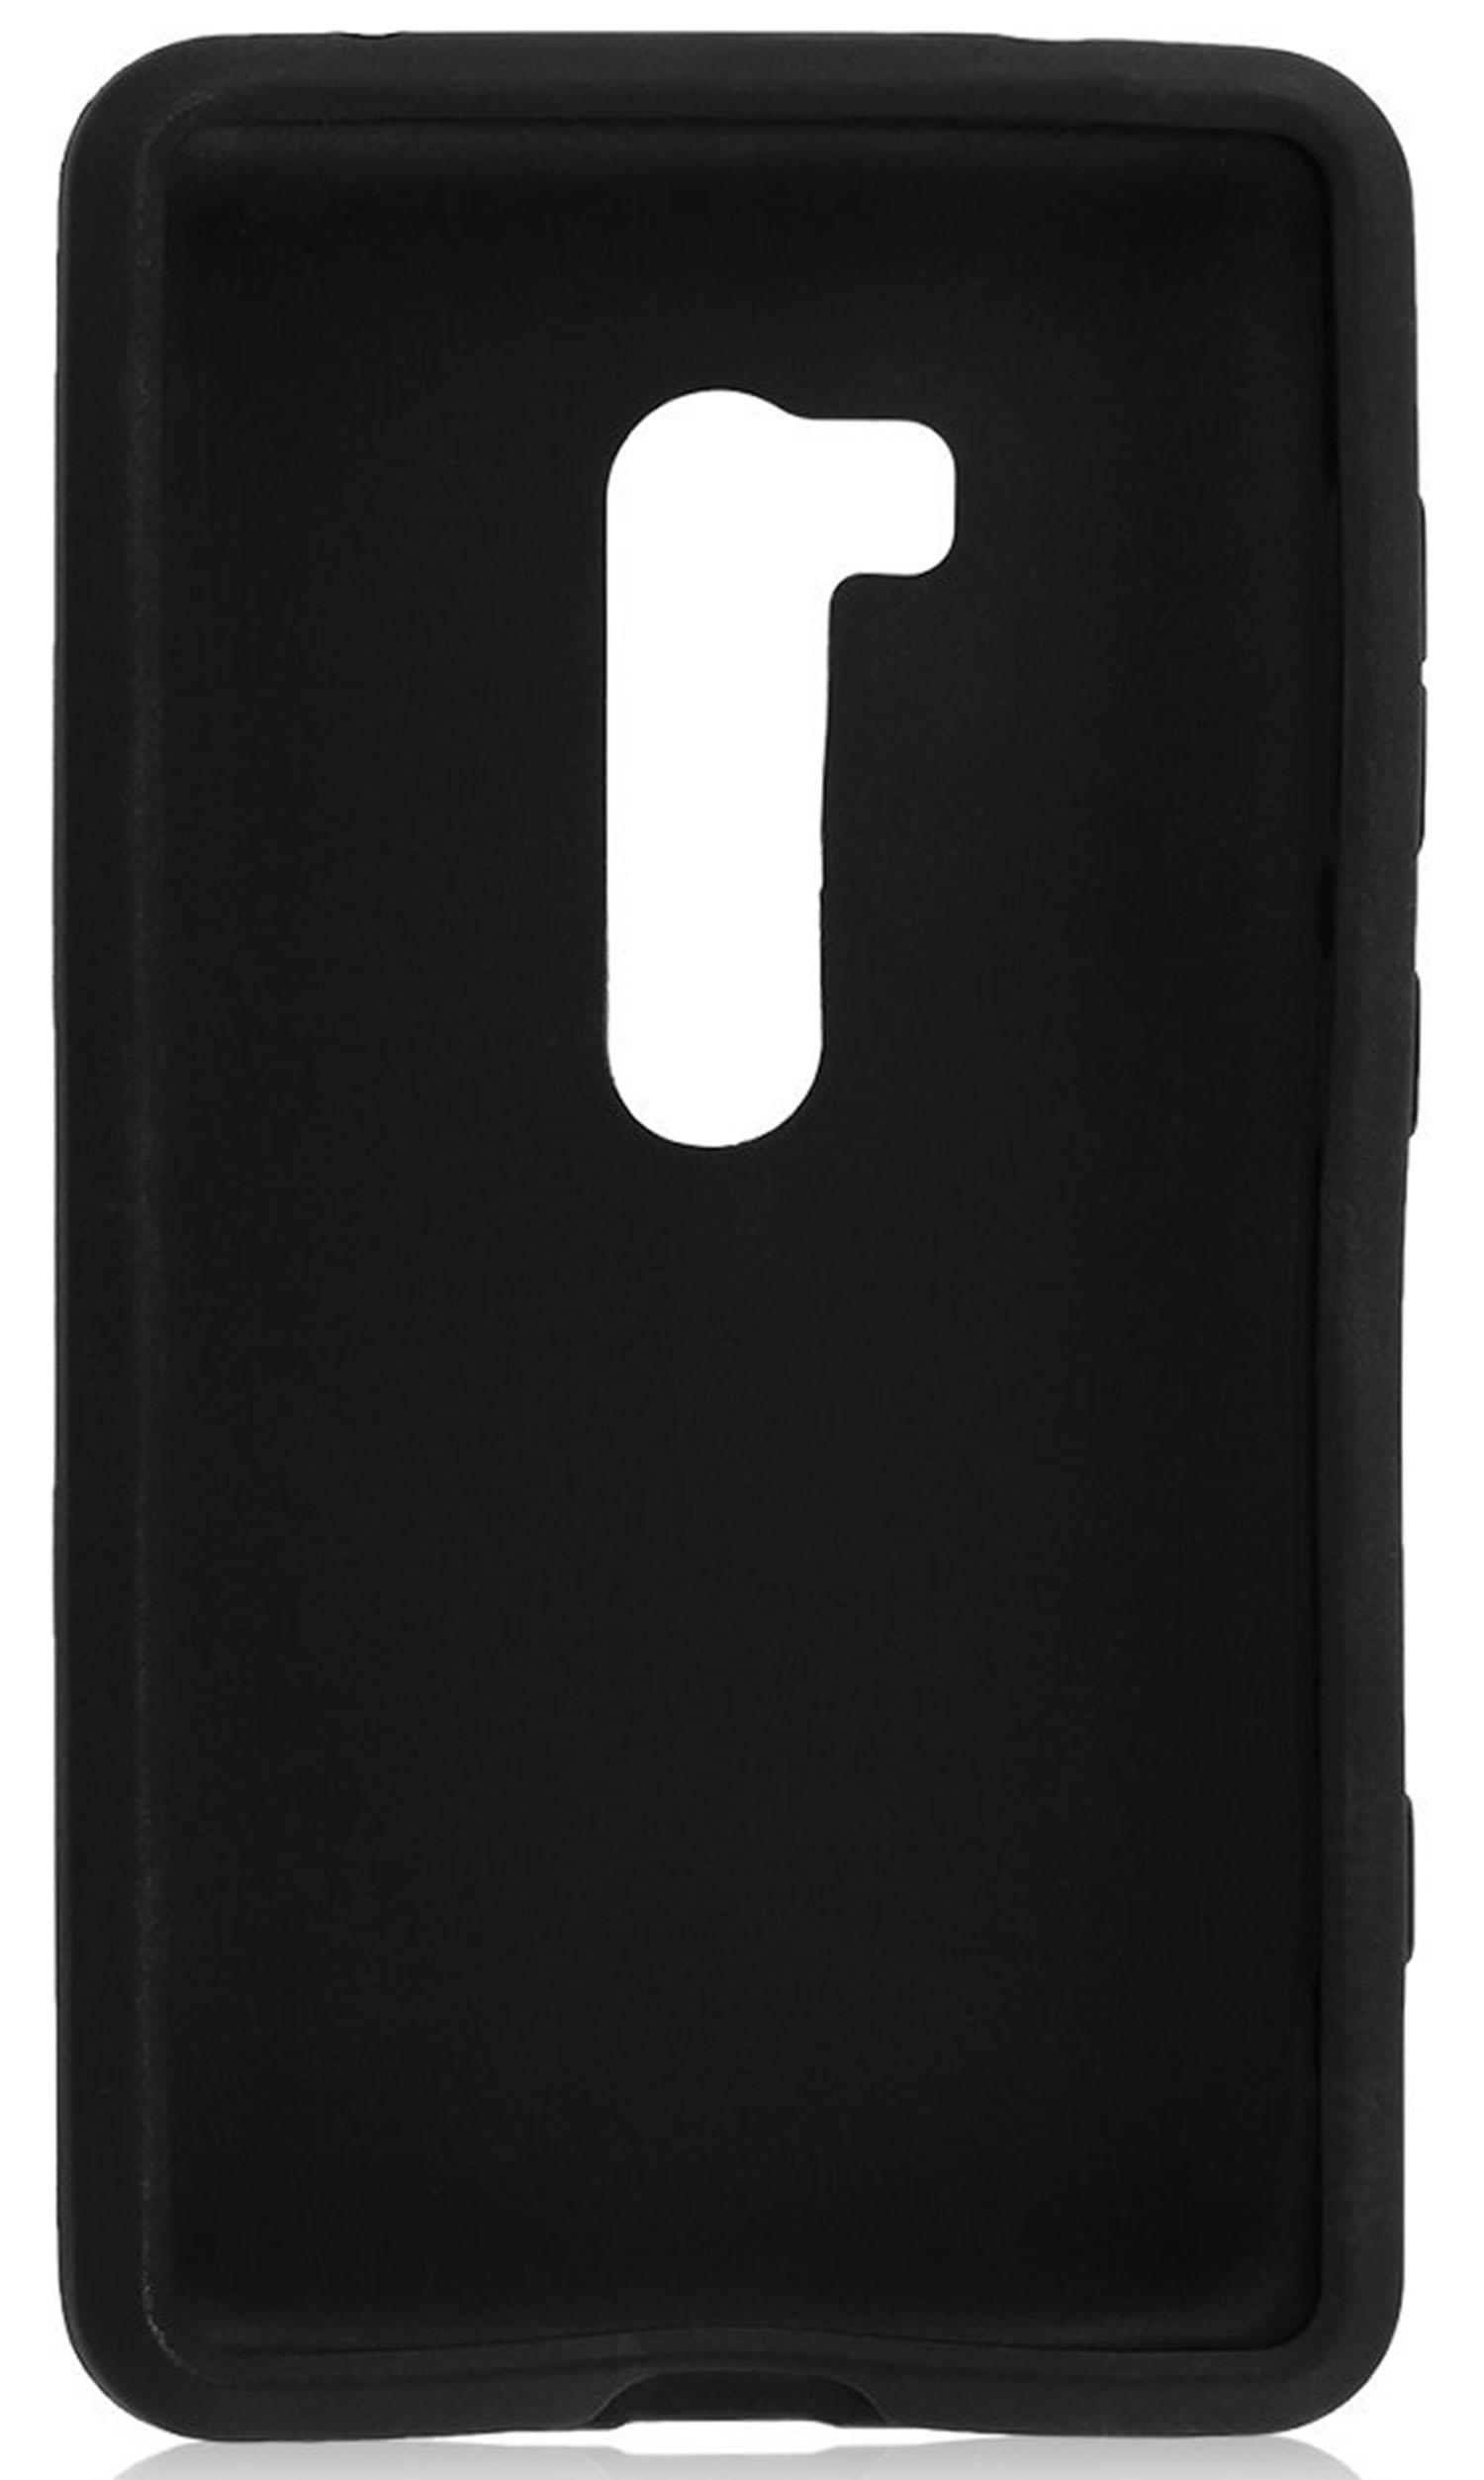 T-mobile Tech21 Nokia Lumia 810 Flex Protective Cover with Impactology Black